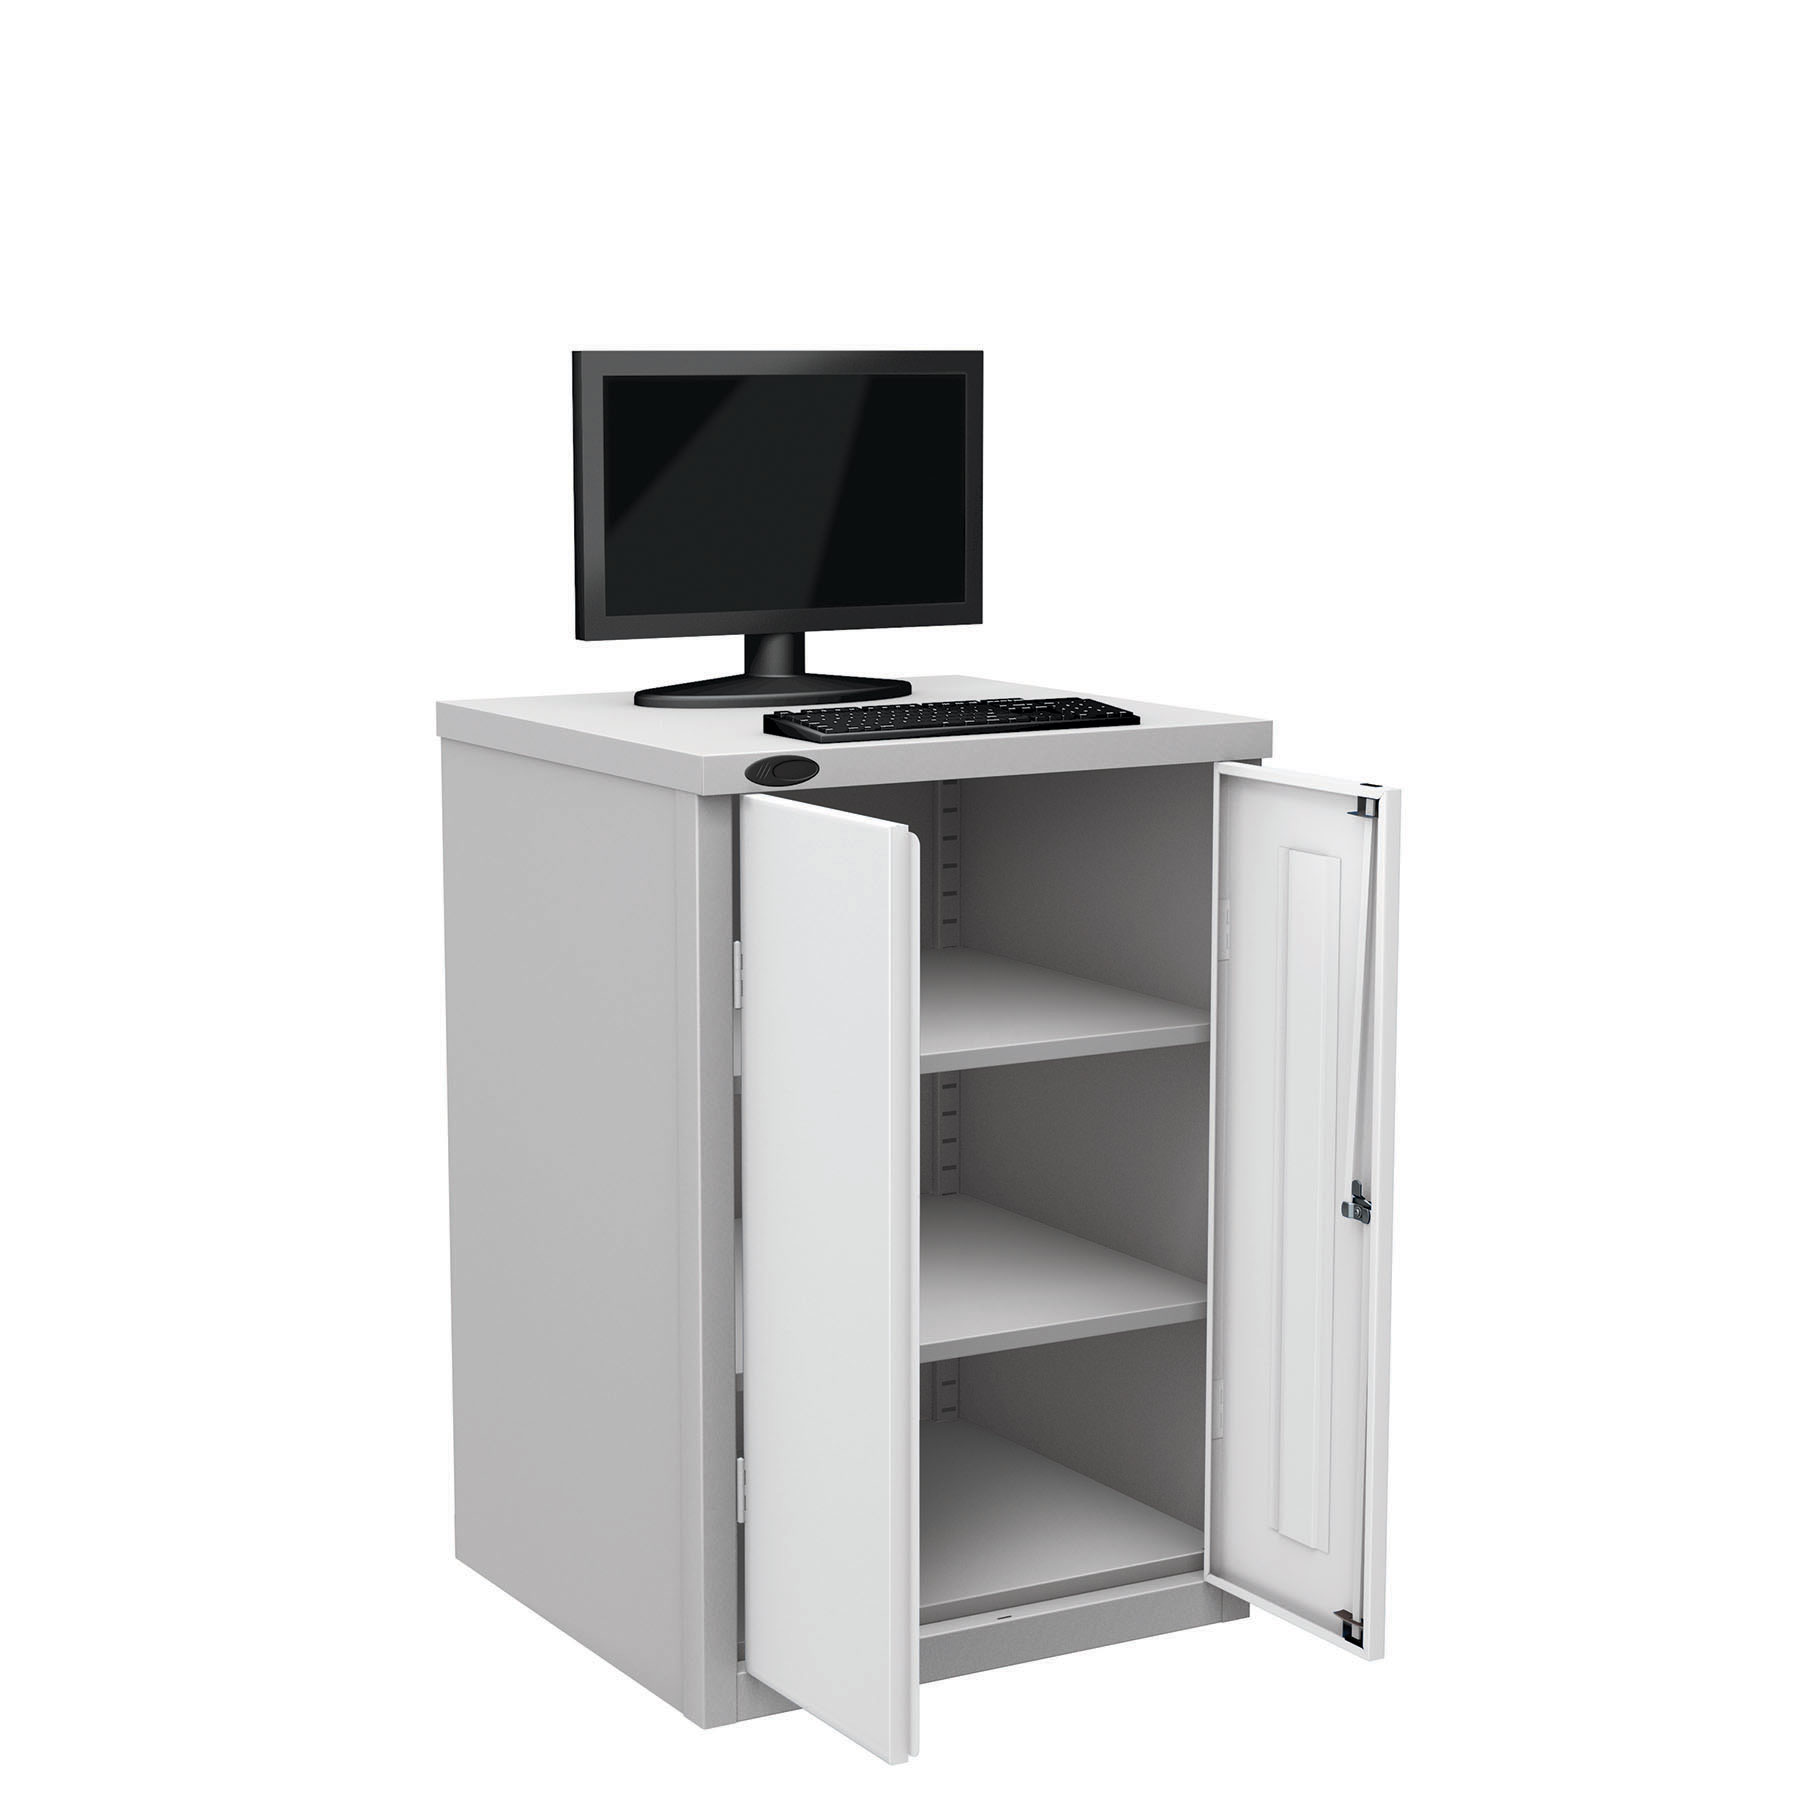 Probe workstation base monitor white